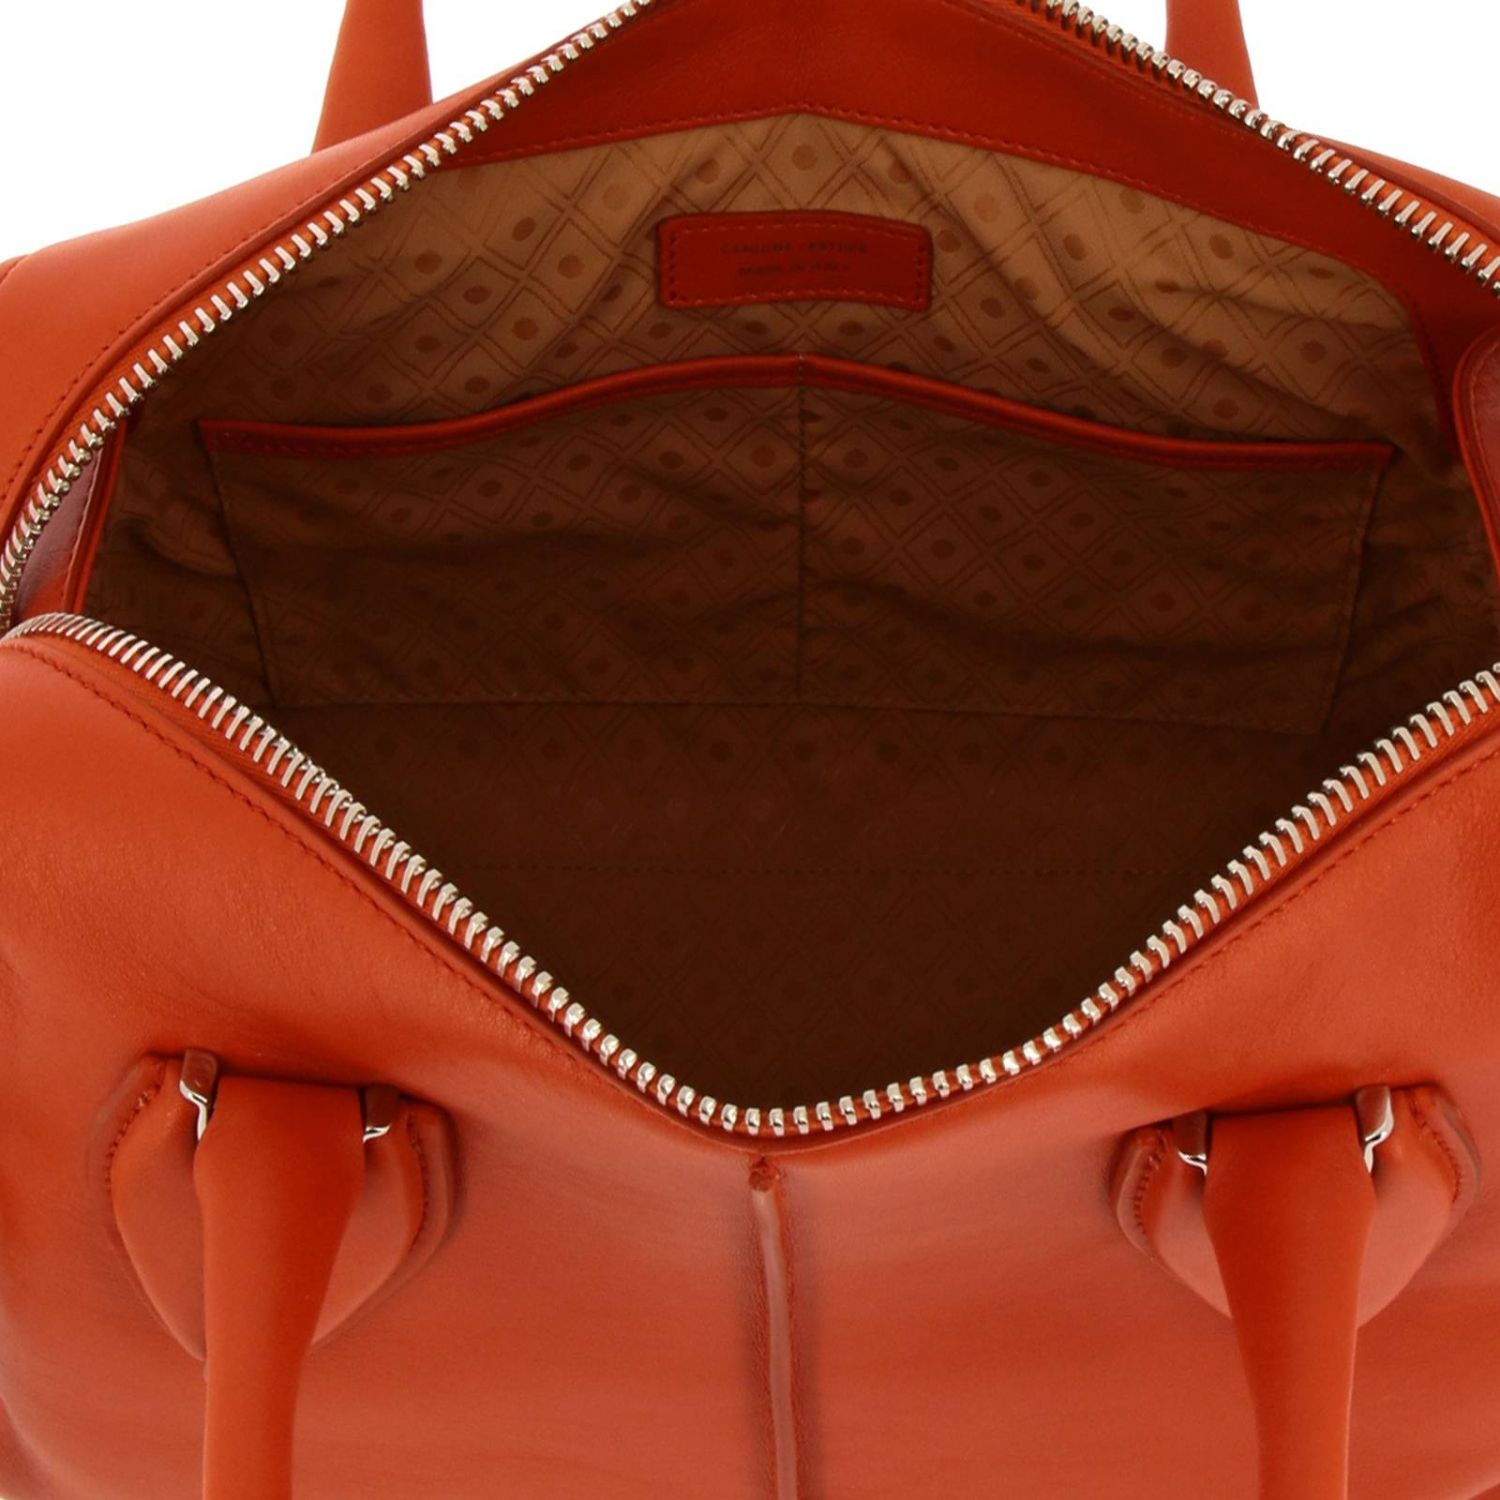 Handbag Tods: Shoulder bag women Tod's orange 5